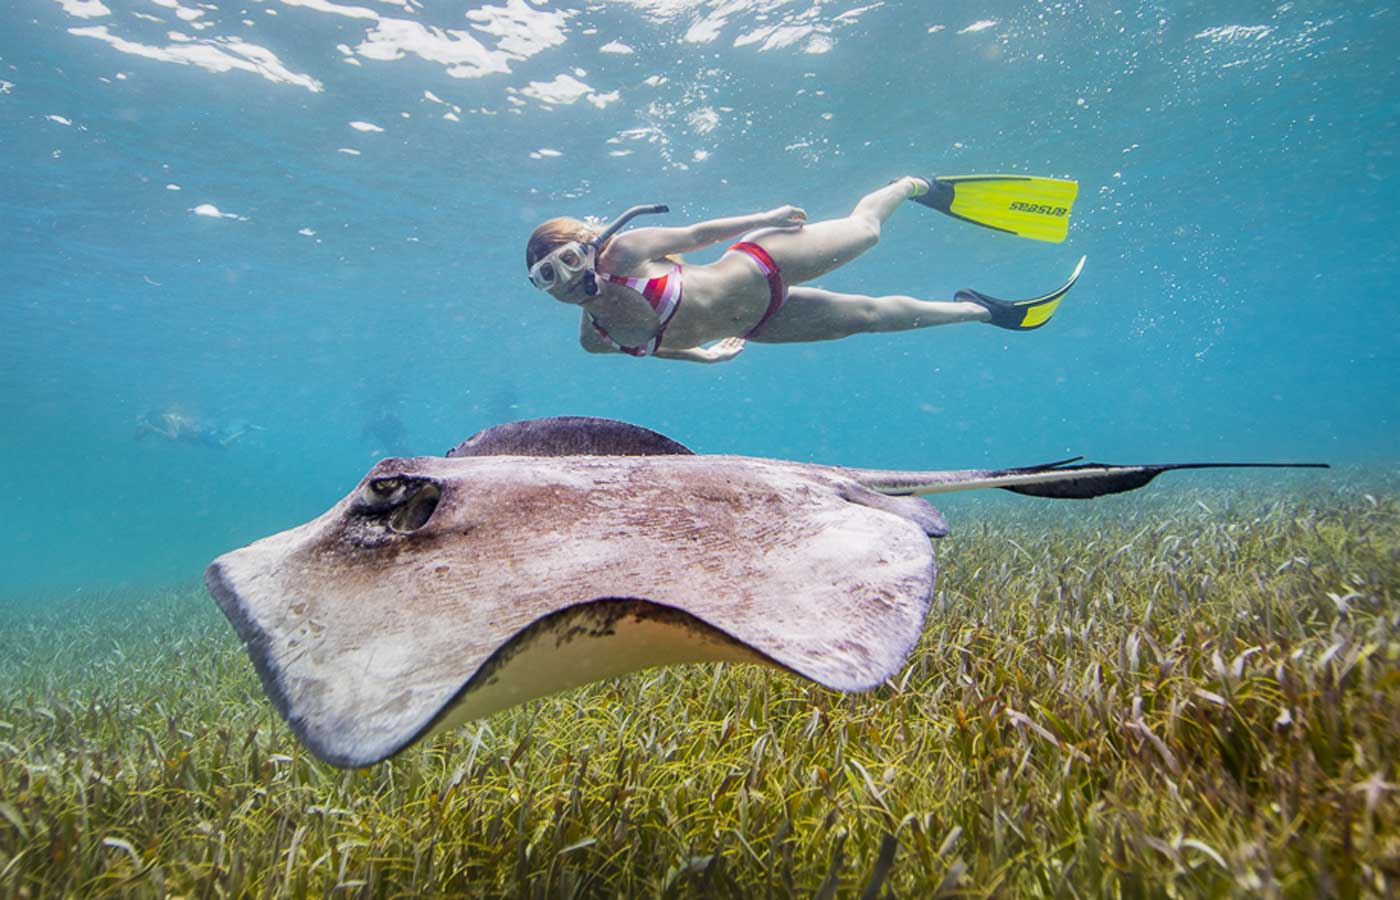 Belize snorkelling with Sting Ray, luxury Belize, tailor-made holidays to Belize, luxury holidays to Belize, Belize luxury holidays